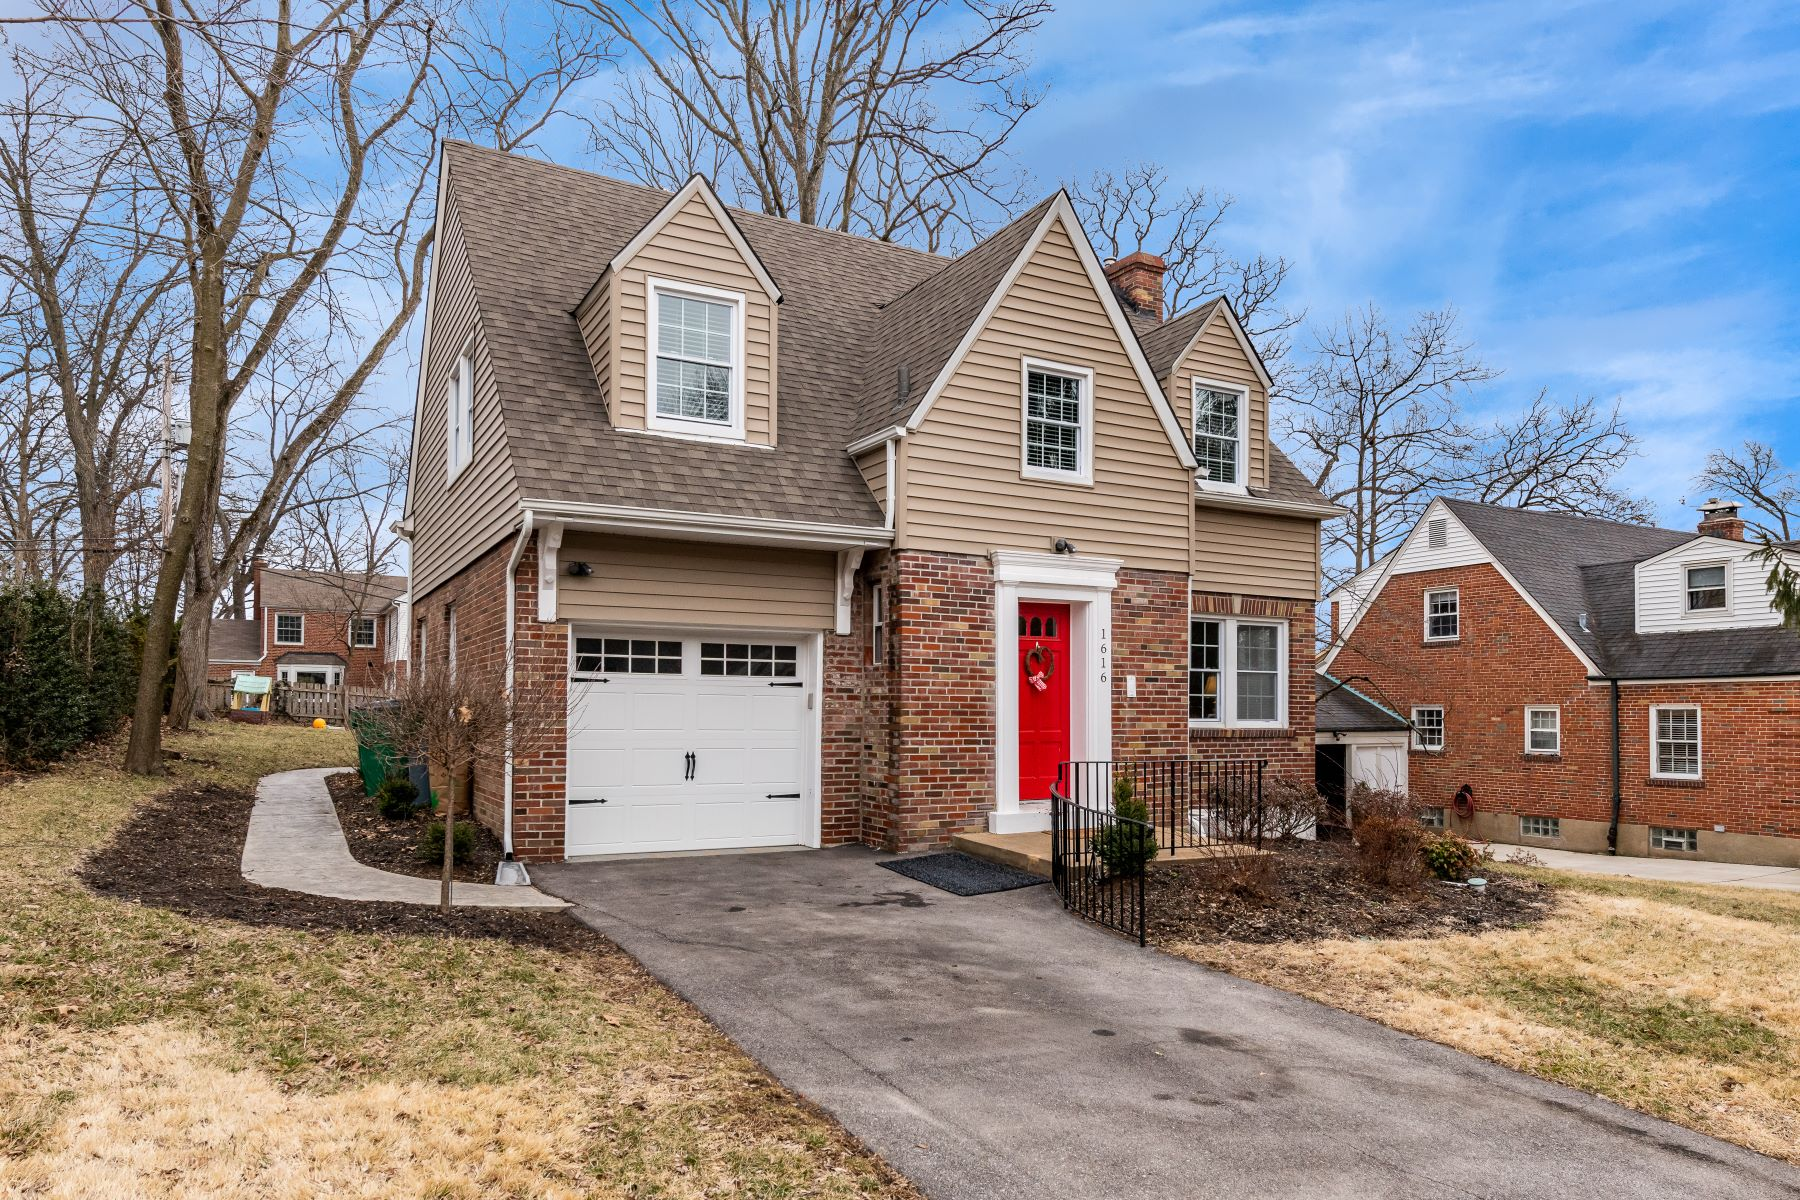 Single Family Home for Sale at Renovated Home in Warson Woods 1616 Andrew Drive St. Louis, Missouri 63122 United States